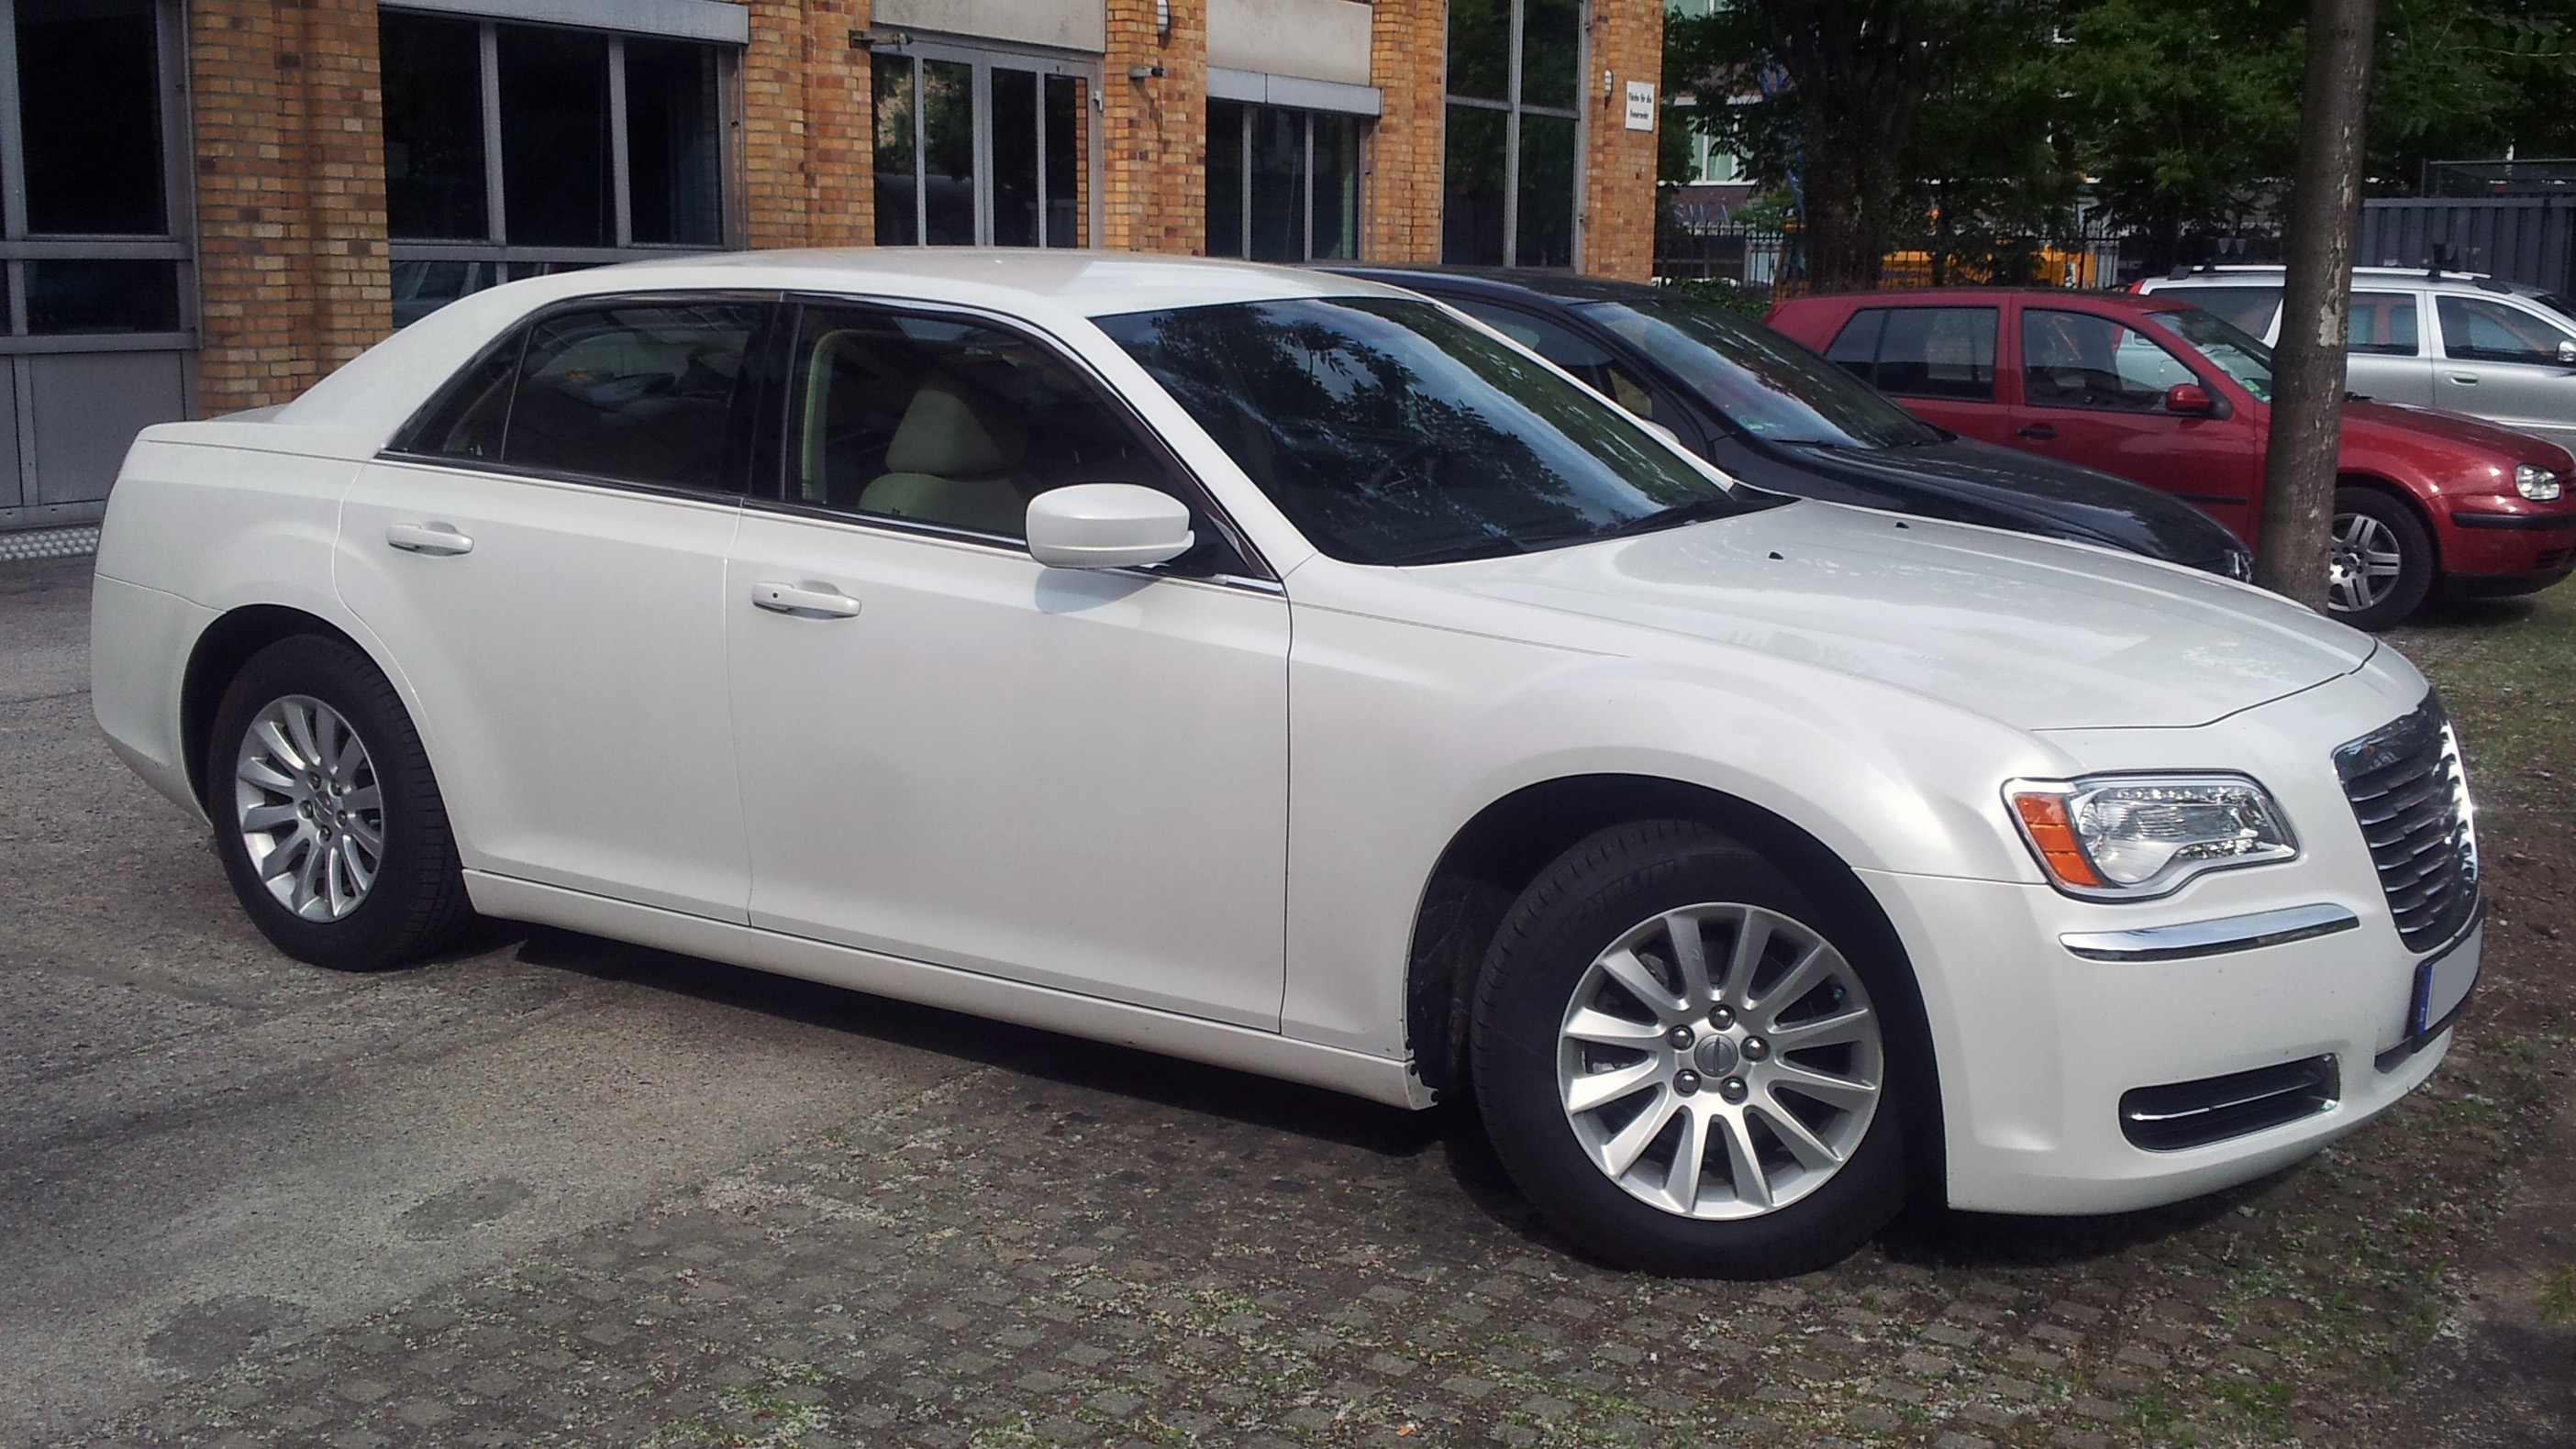 White Rims Chrysler 300 2005 Owners Manual Pictures